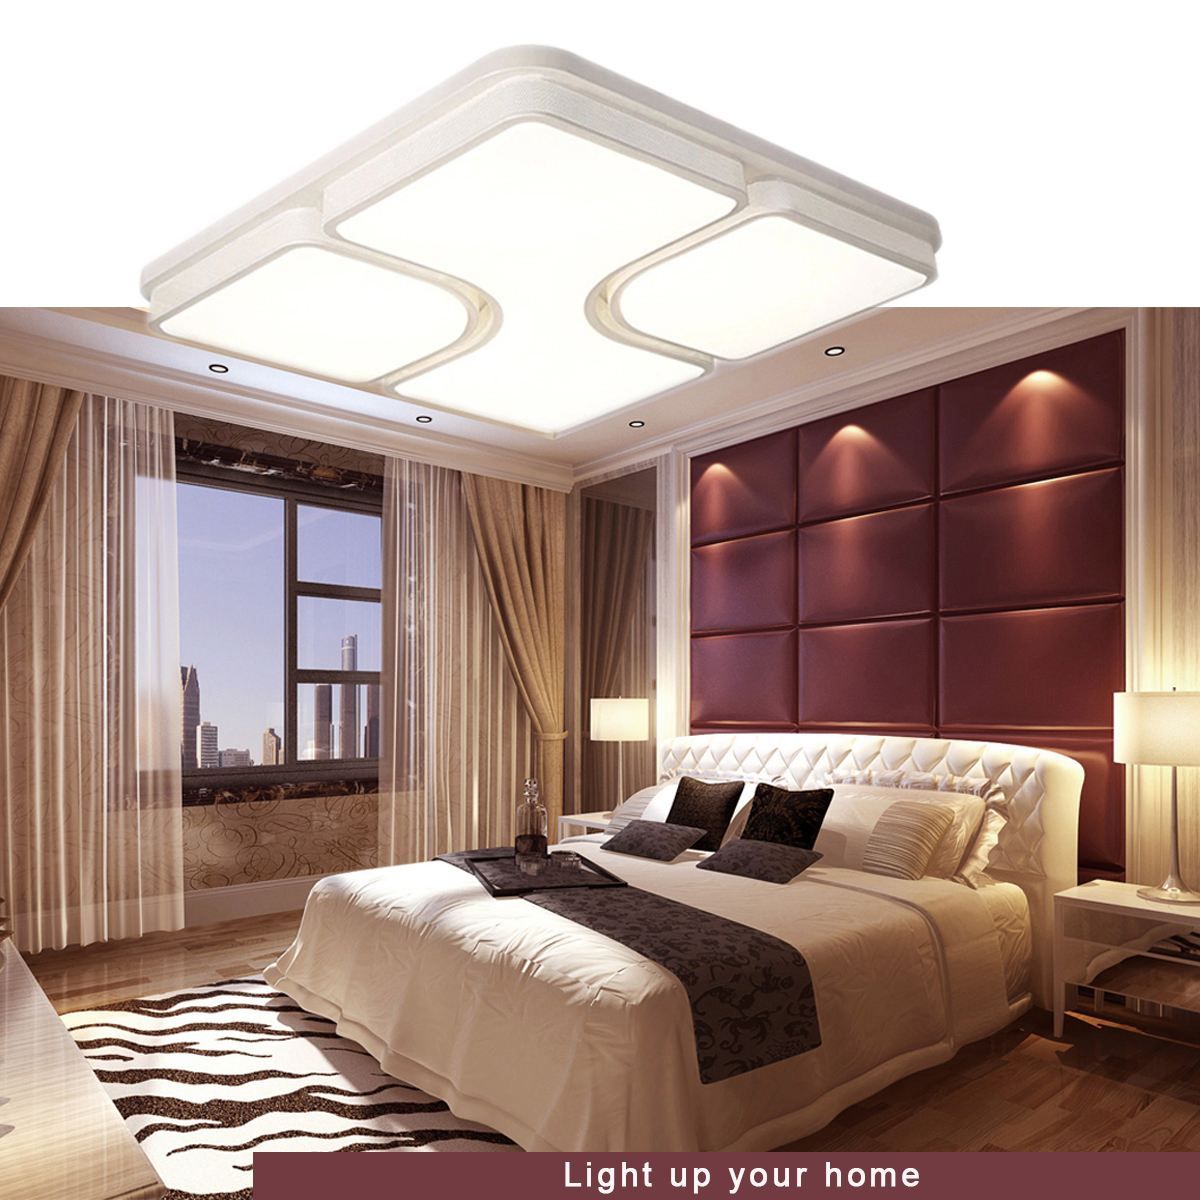 LED Square Design Modern Iron Ceiling Light Night Lamp Fixtures Living Room Bedroom Home Decor Indoor Warm White Lighting 24W noosion modern led ceiling lamp for bedroom room black and white color with crystal plafon techo iluminacion lustre de plafond